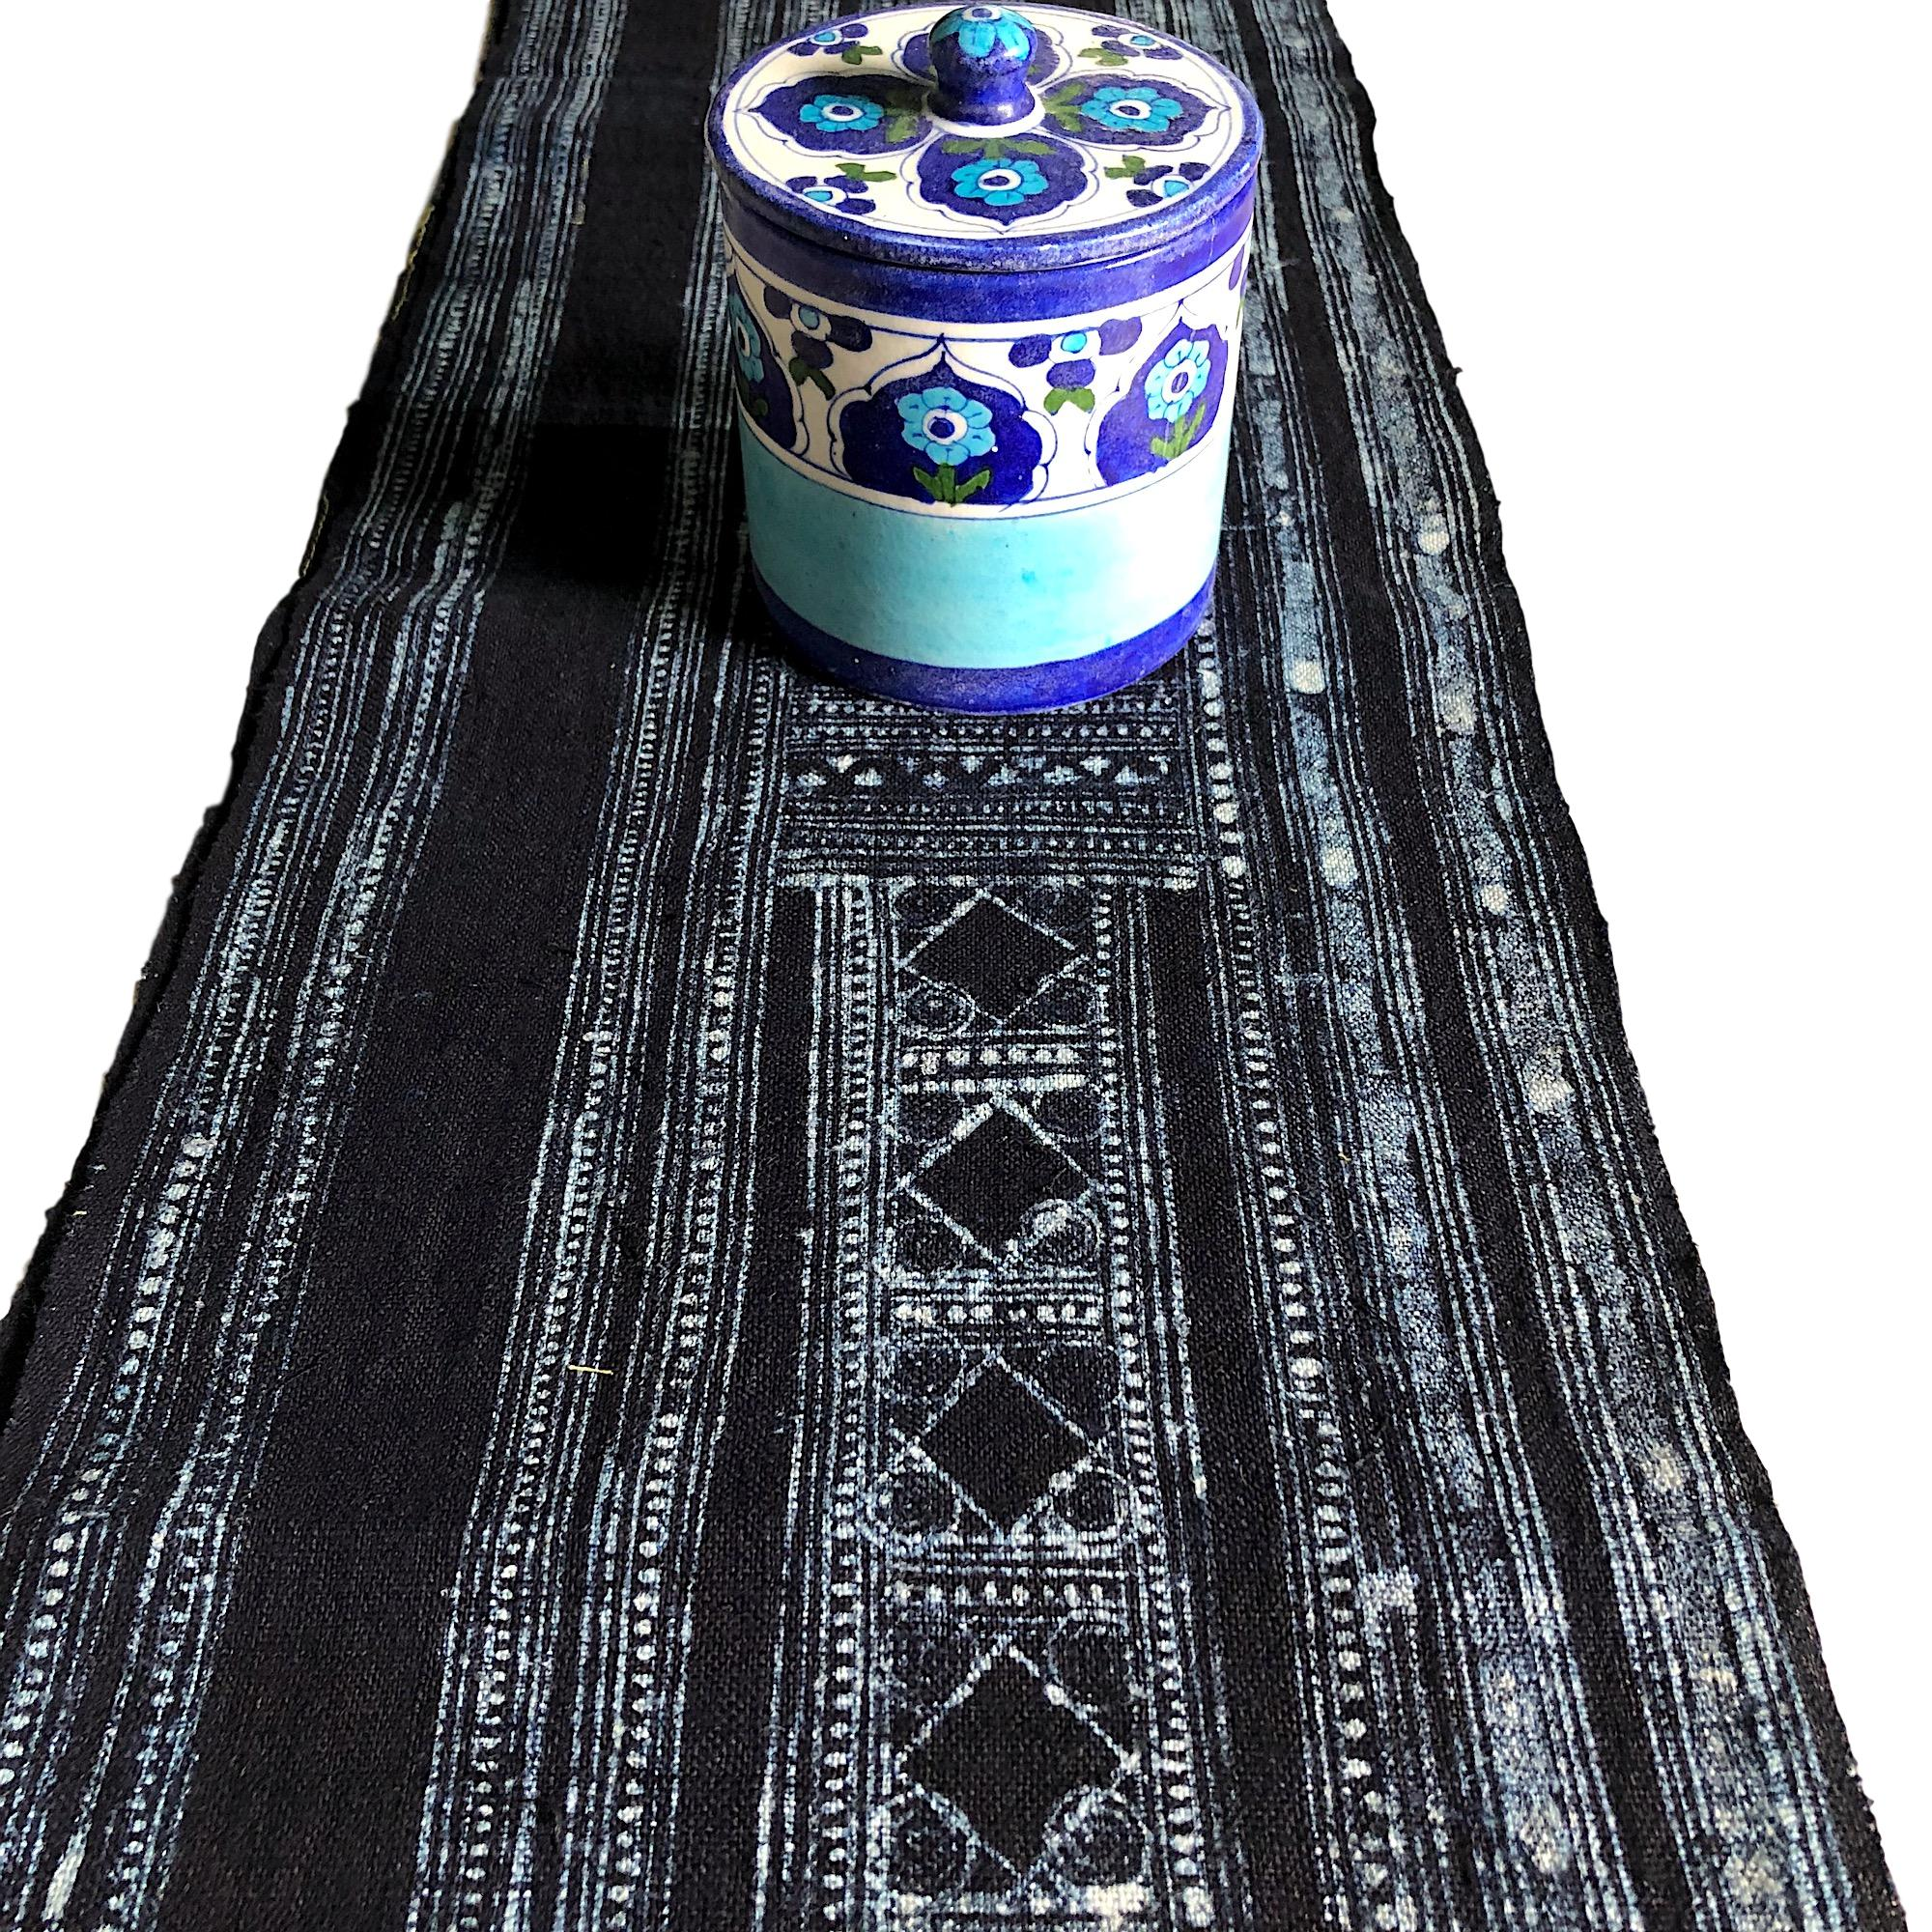 Indigo hemp fabric length 196 x 28cm - Pallu Design